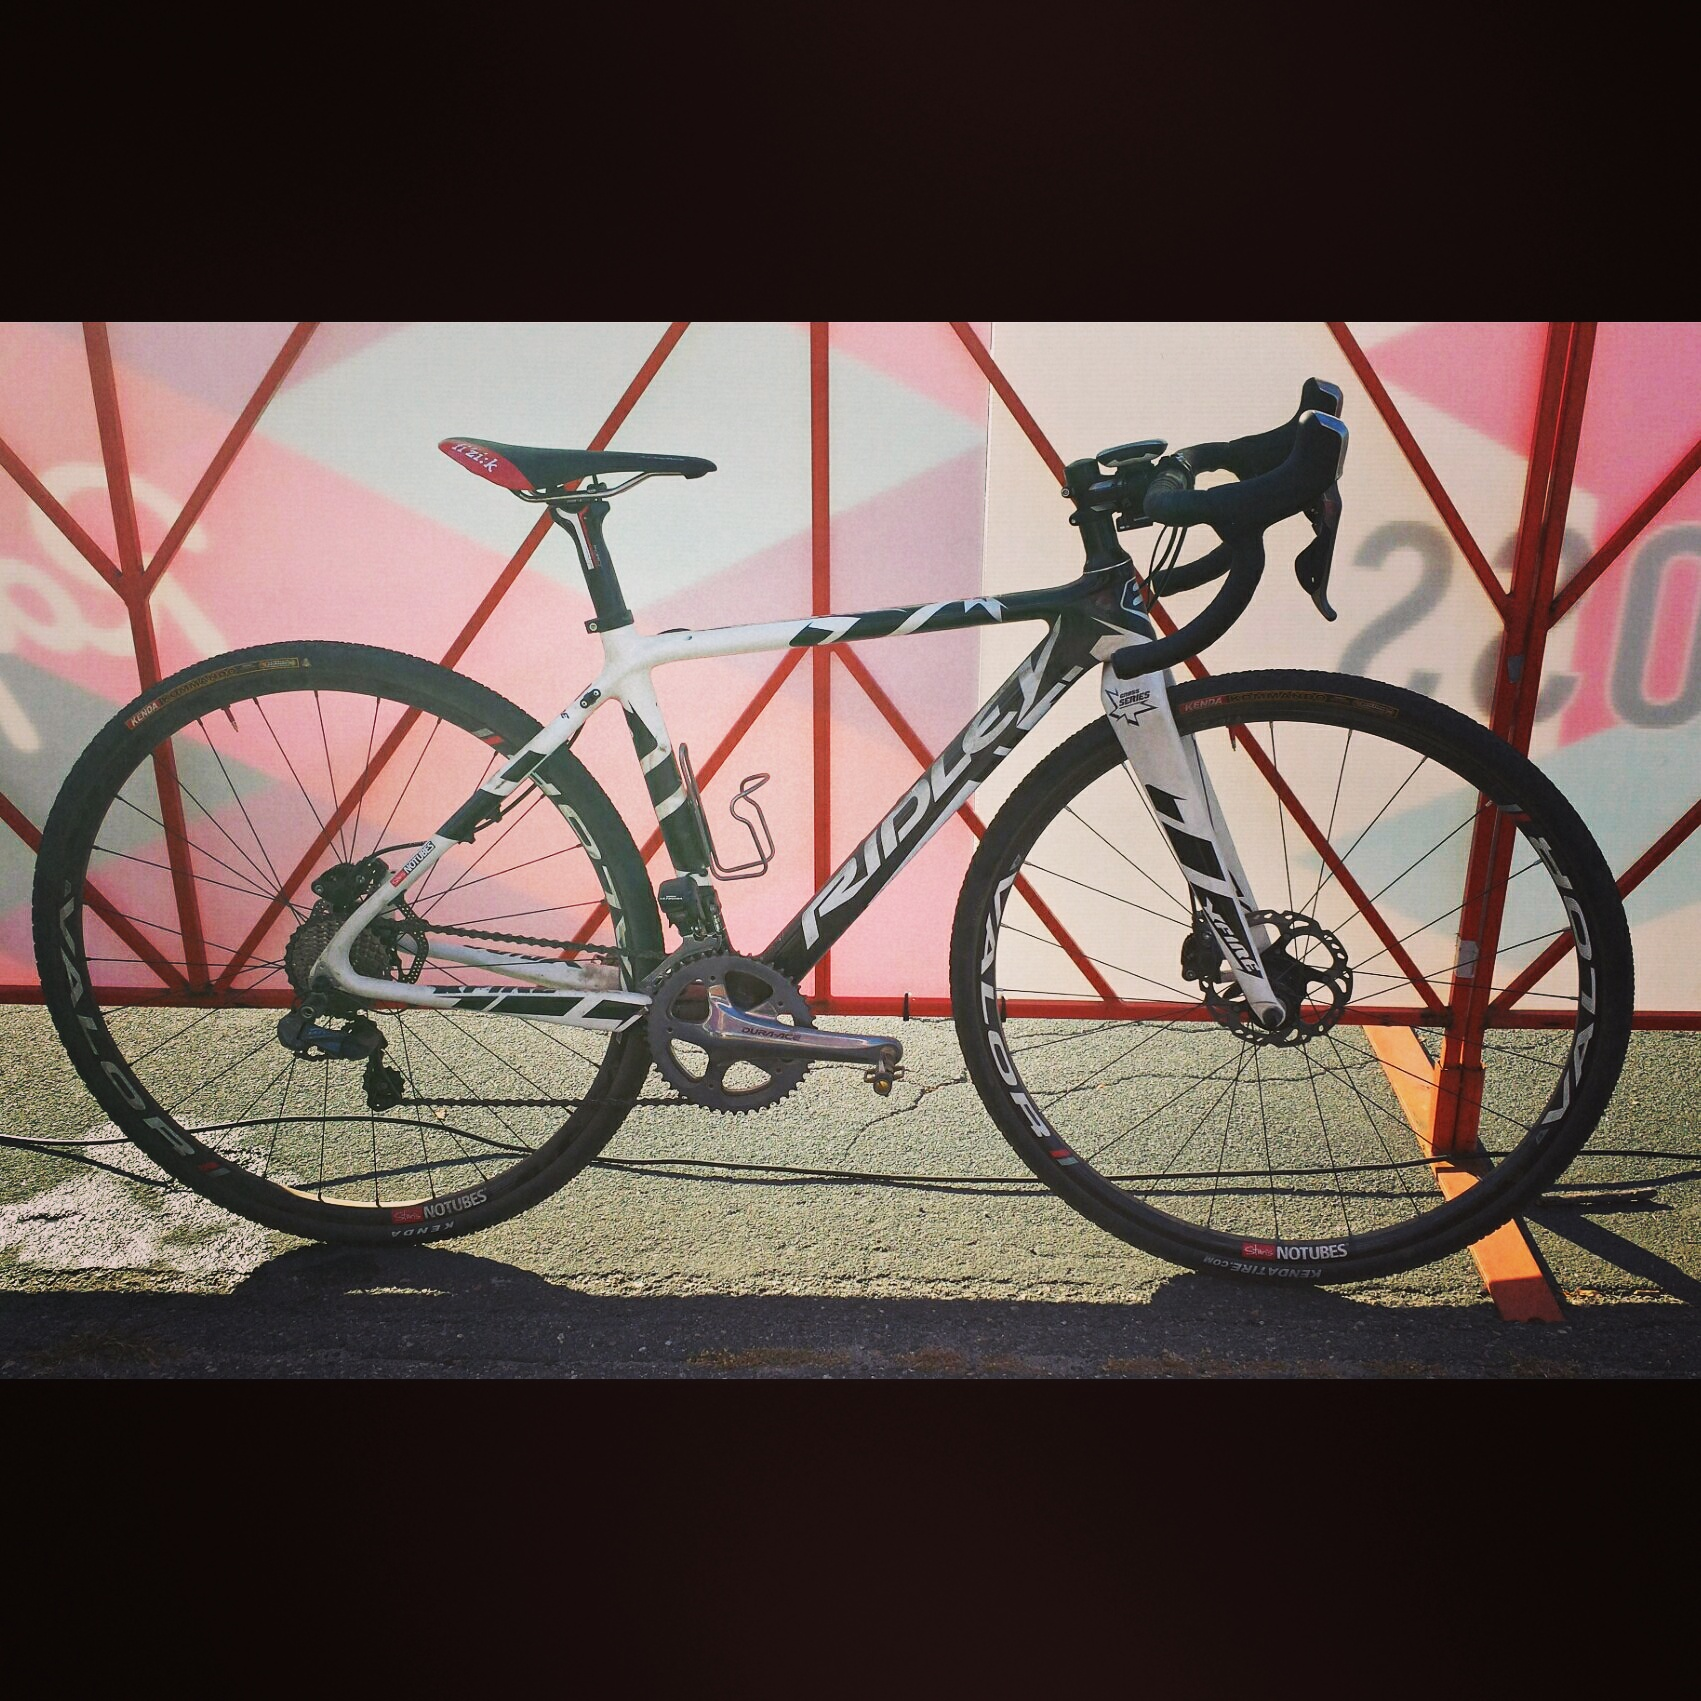 StansNoTubes_Ridley